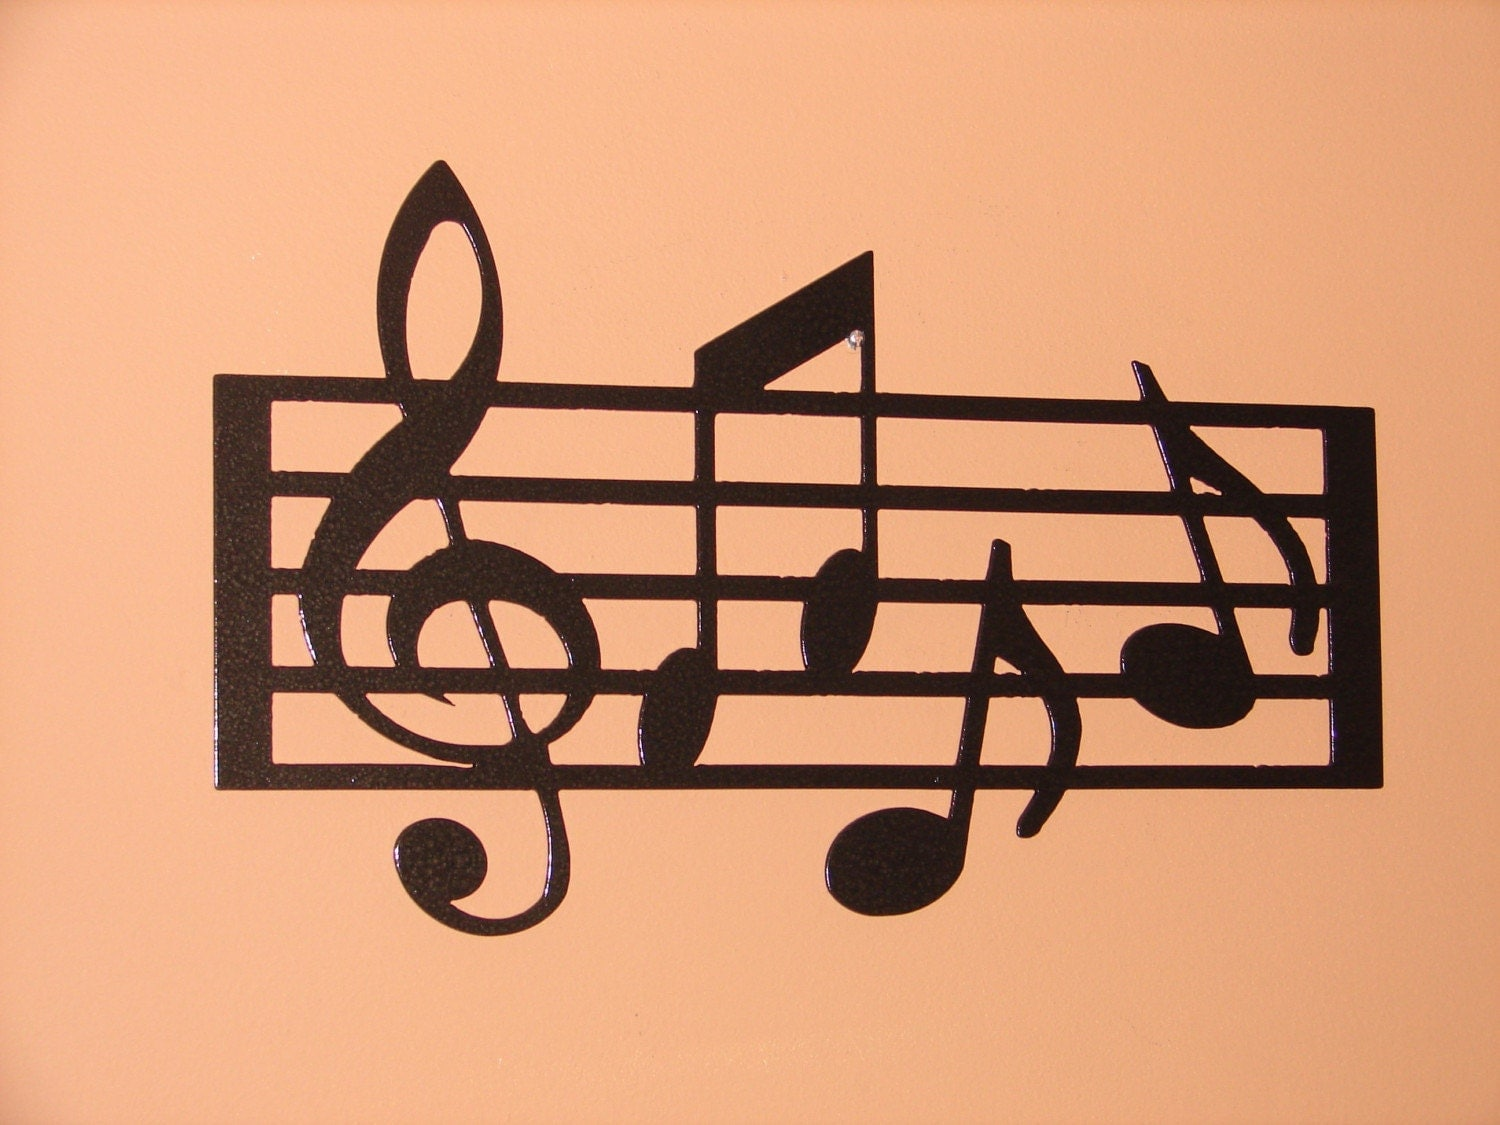 Metal Wall Art Home Decor Music Notes Musical Long 12in